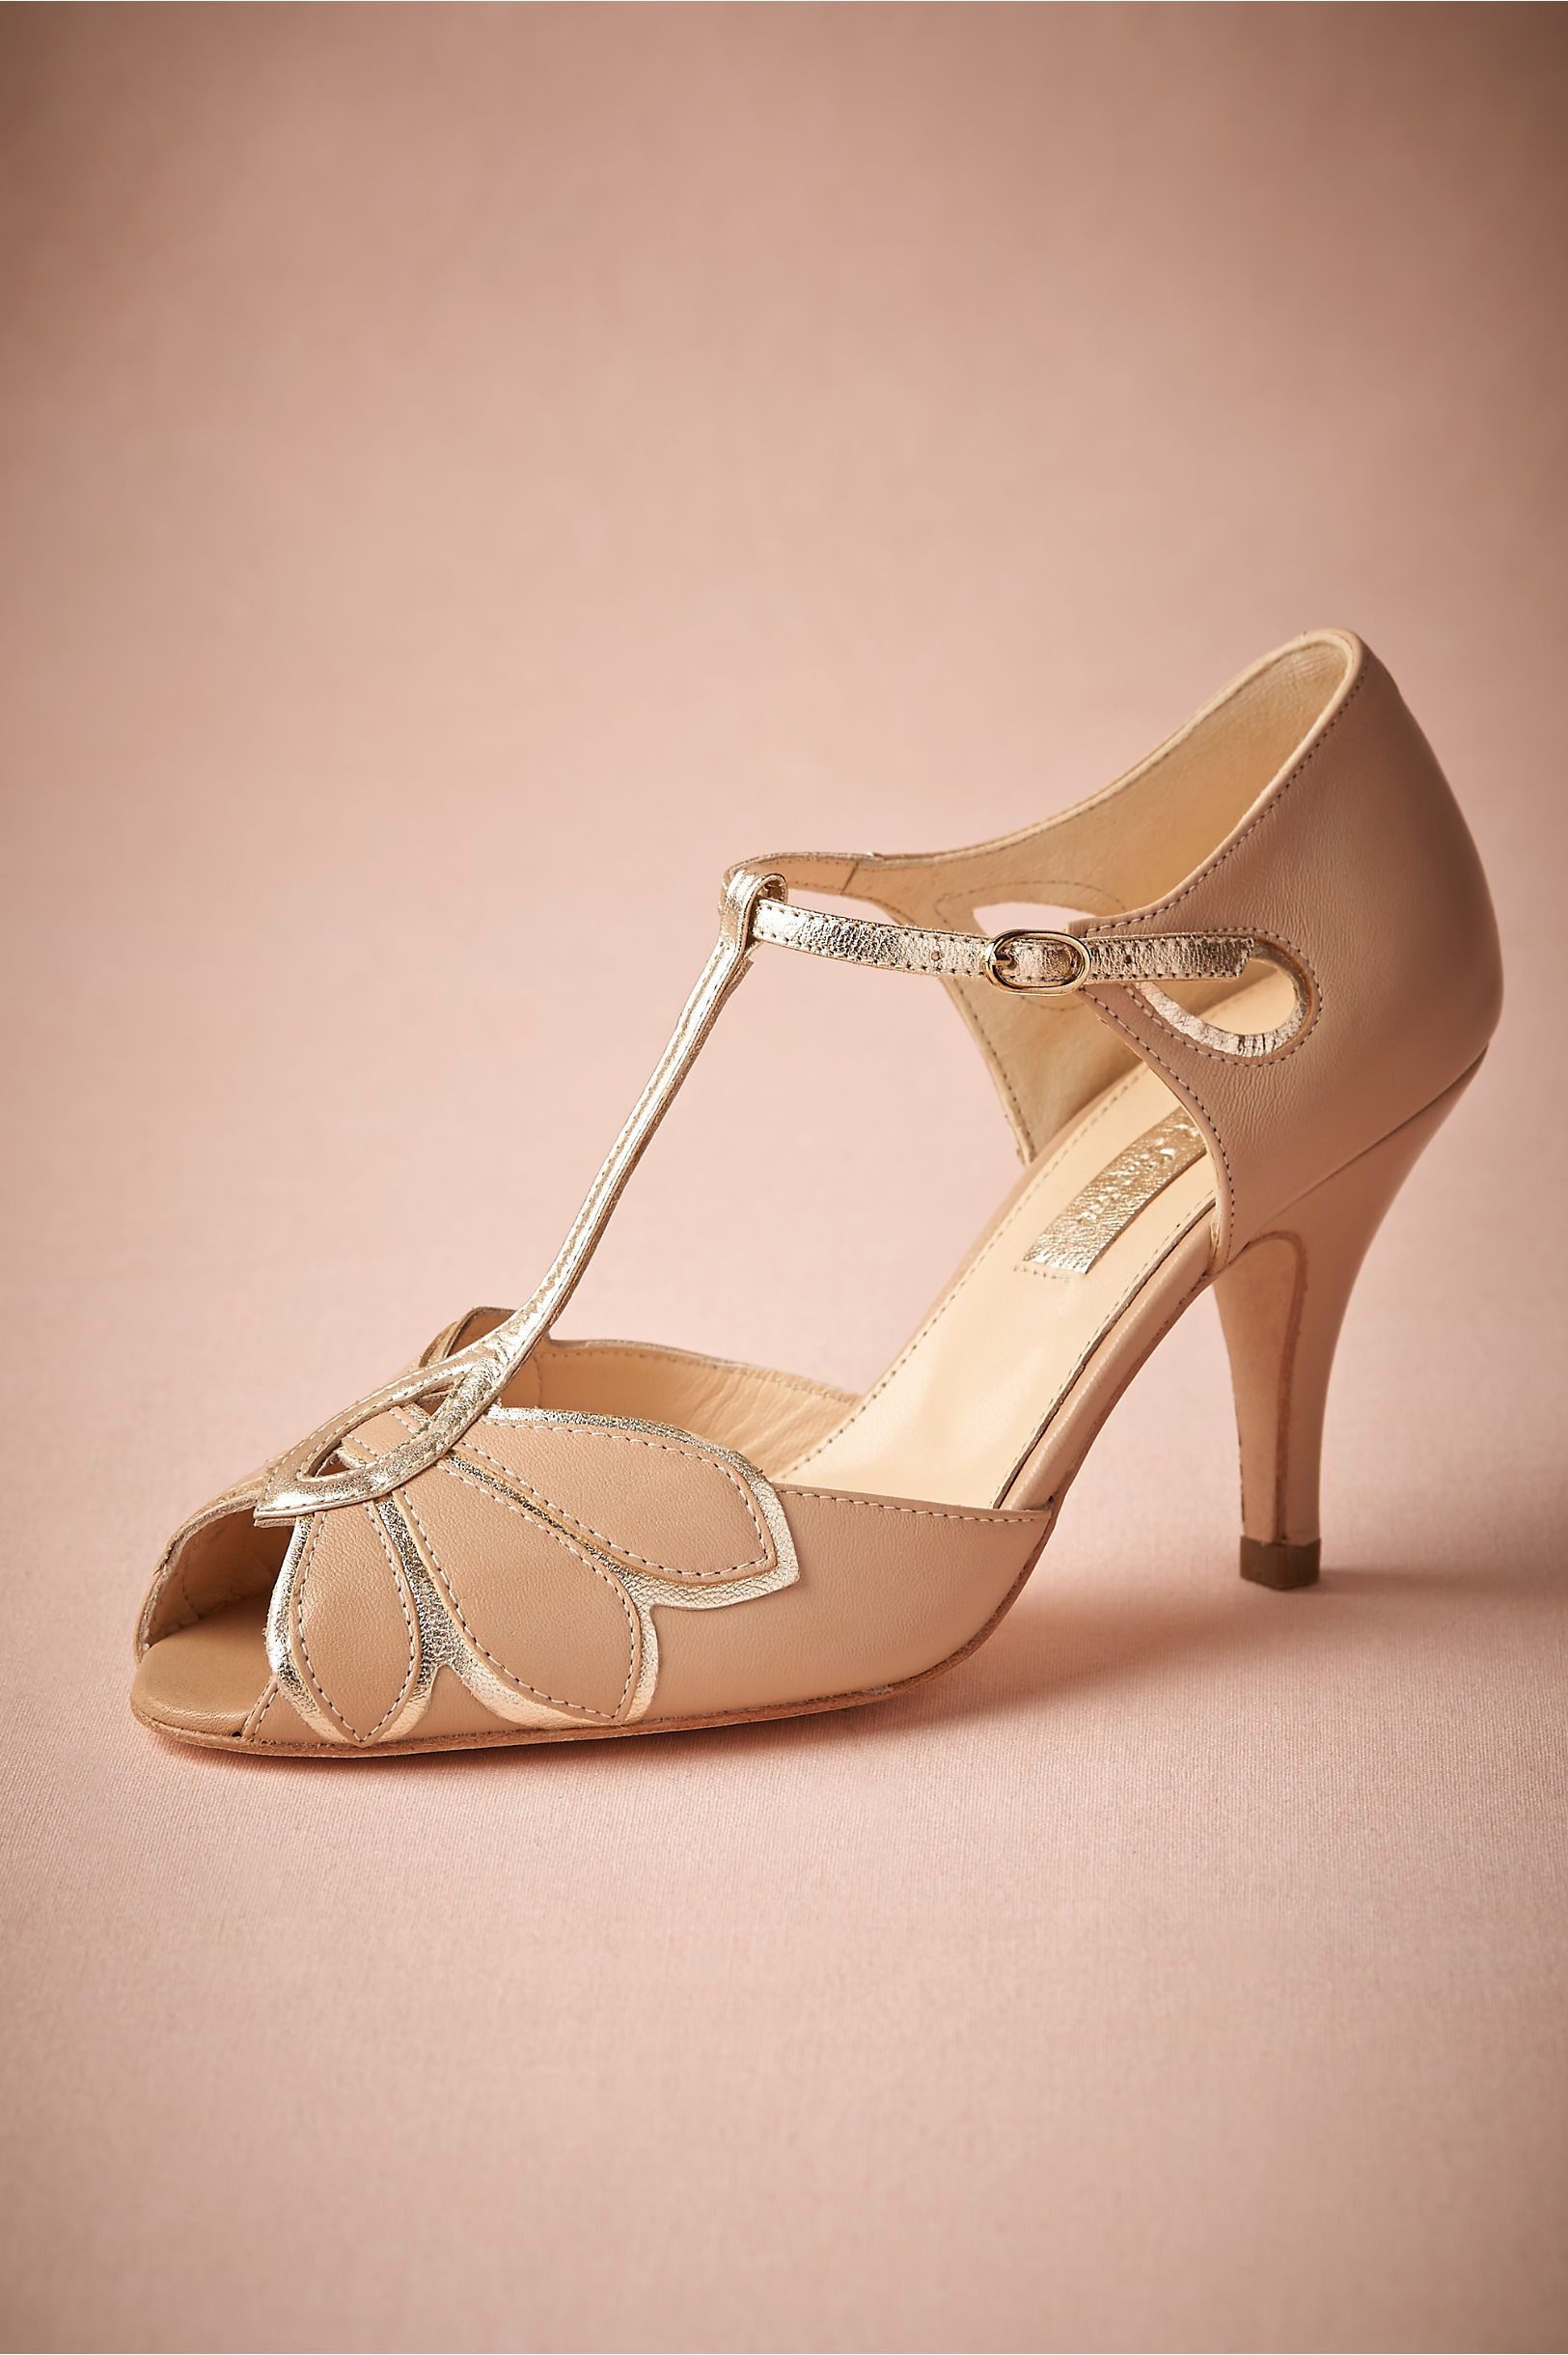 243cbe8c400 Mimosa T-Straps in Bride Bridal Shoes at BHLDN